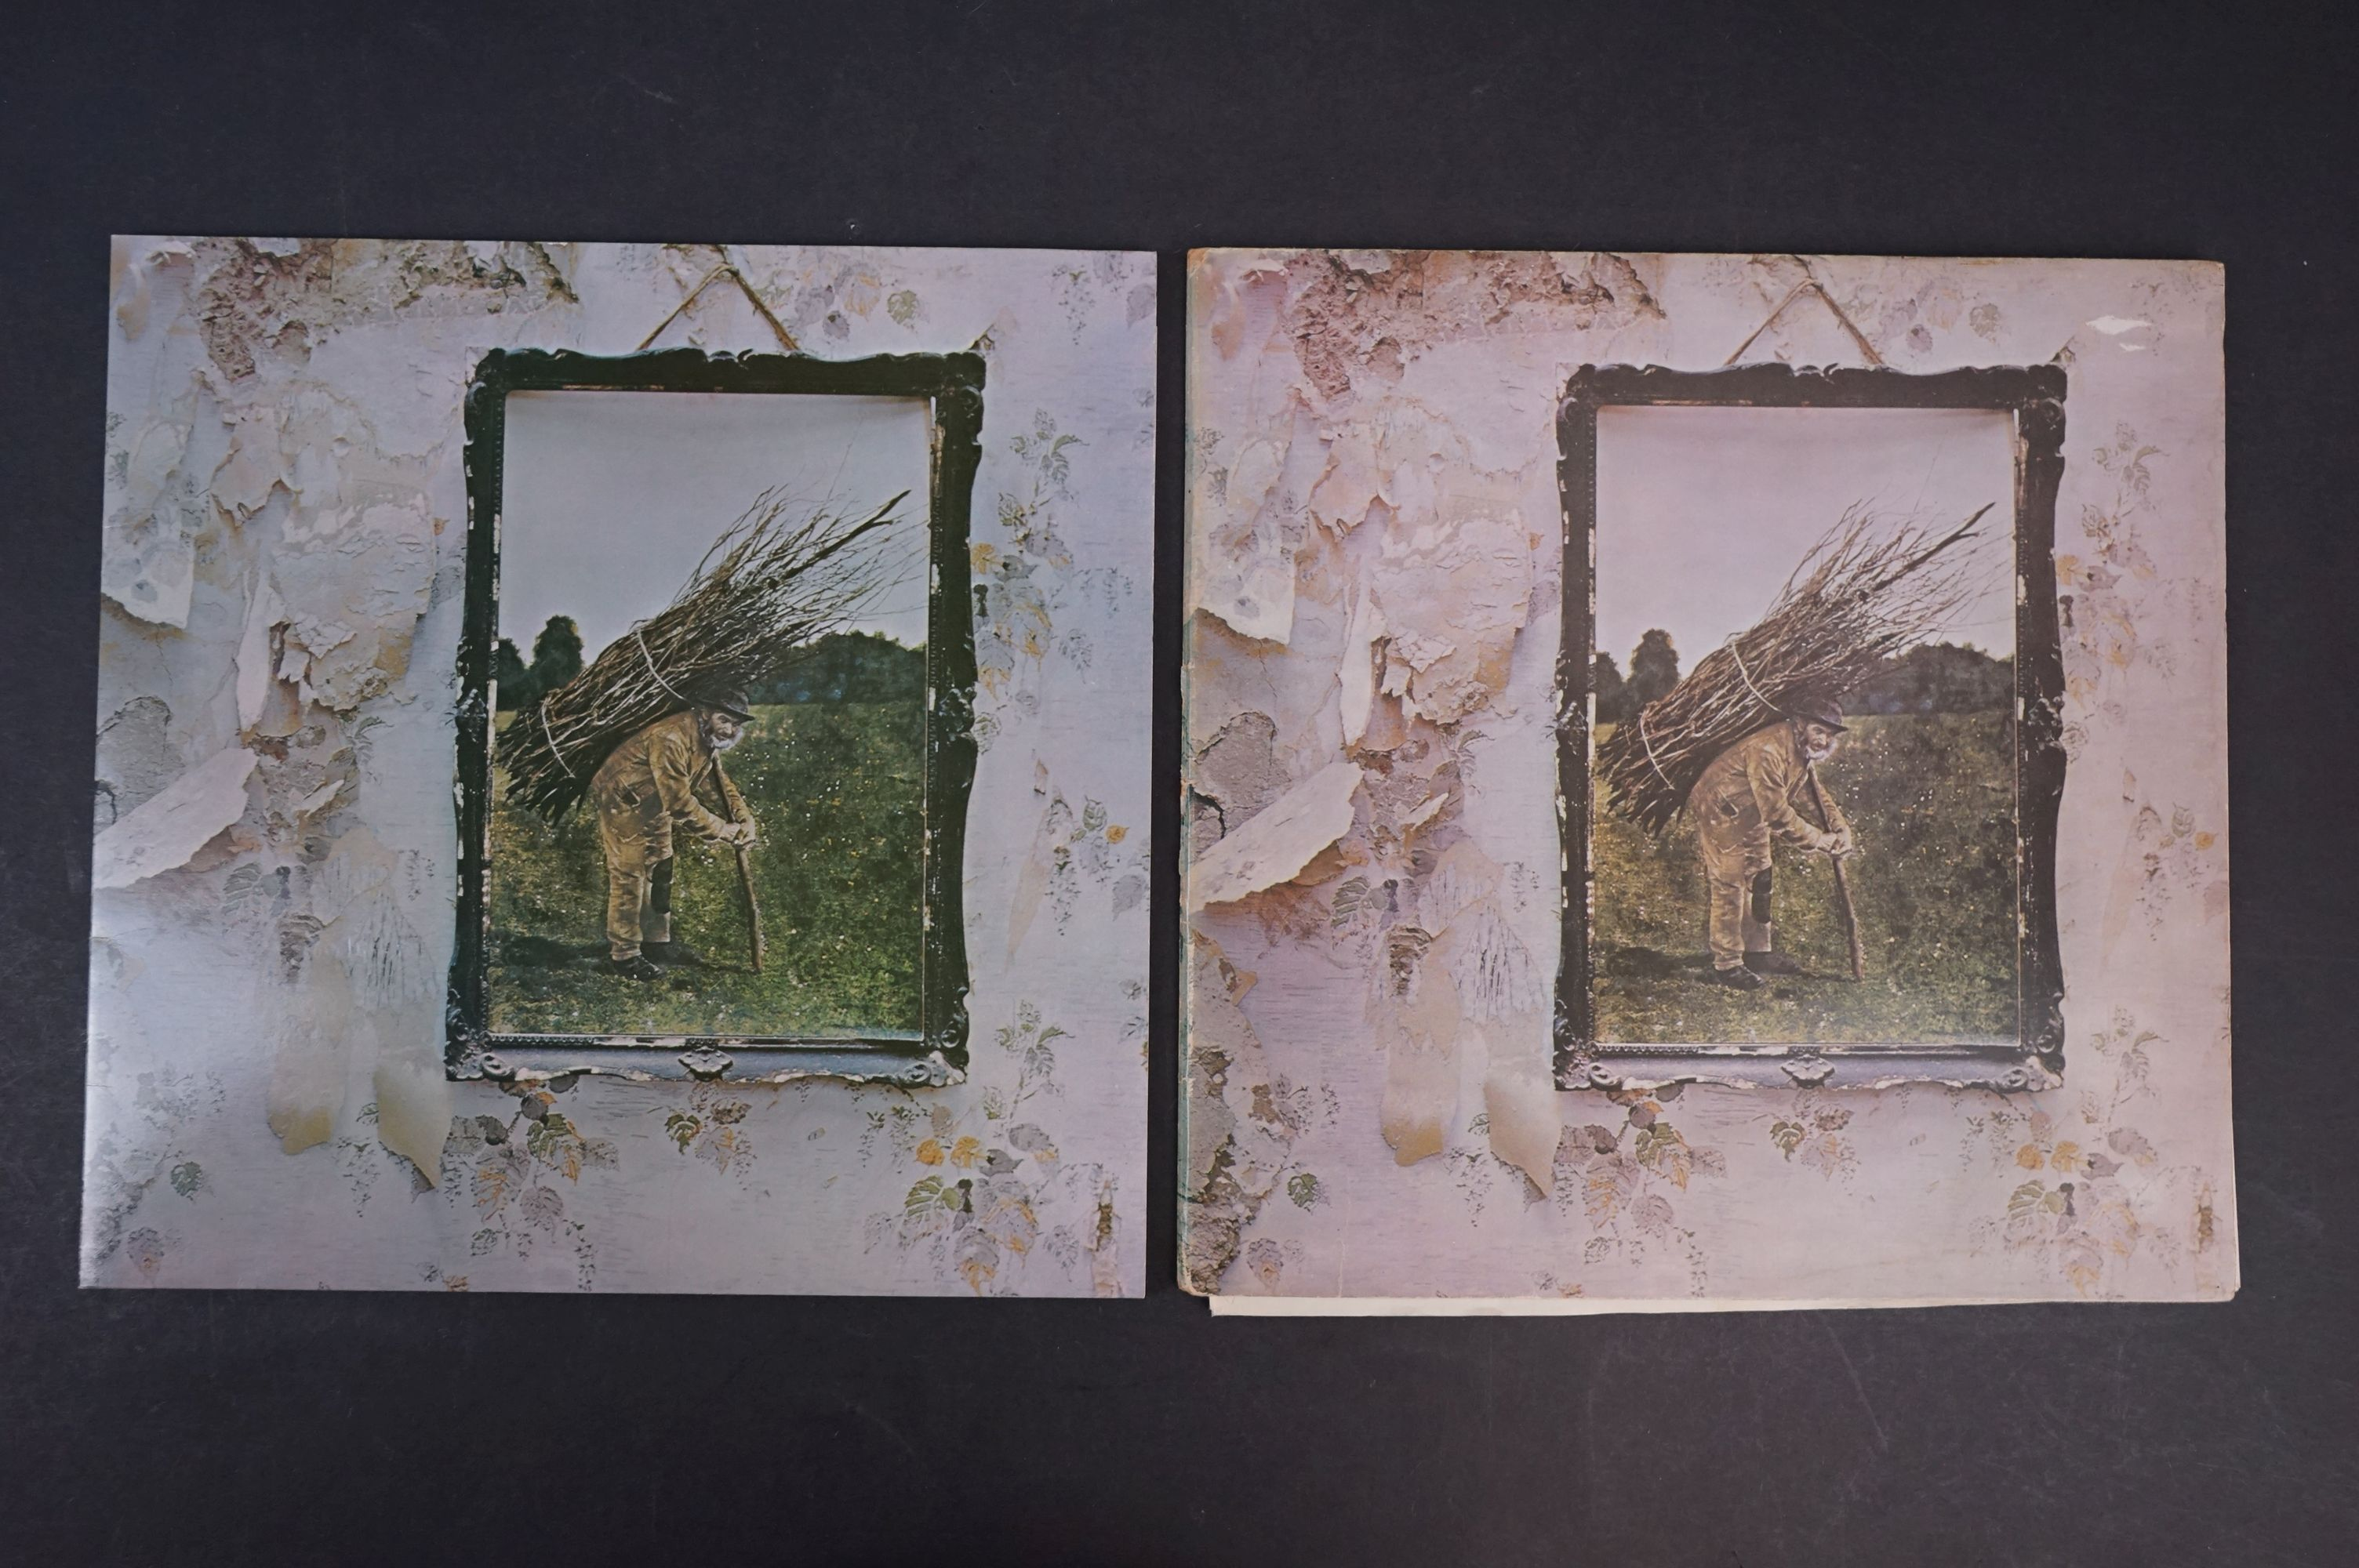 Vinyl - Six Led Zeppelin LPs to include In Through the Outdoor (cover D) SSK59410, Coda 790051, 2 - Image 10 of 17